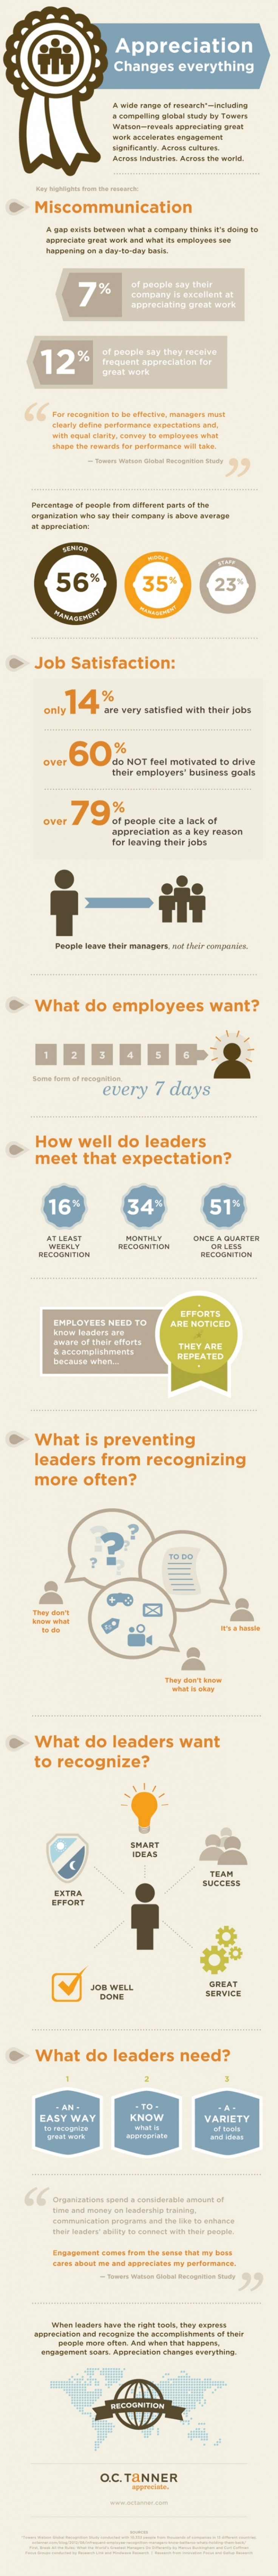 Employee Dissatisfaction Linked to a Lack of Recognition